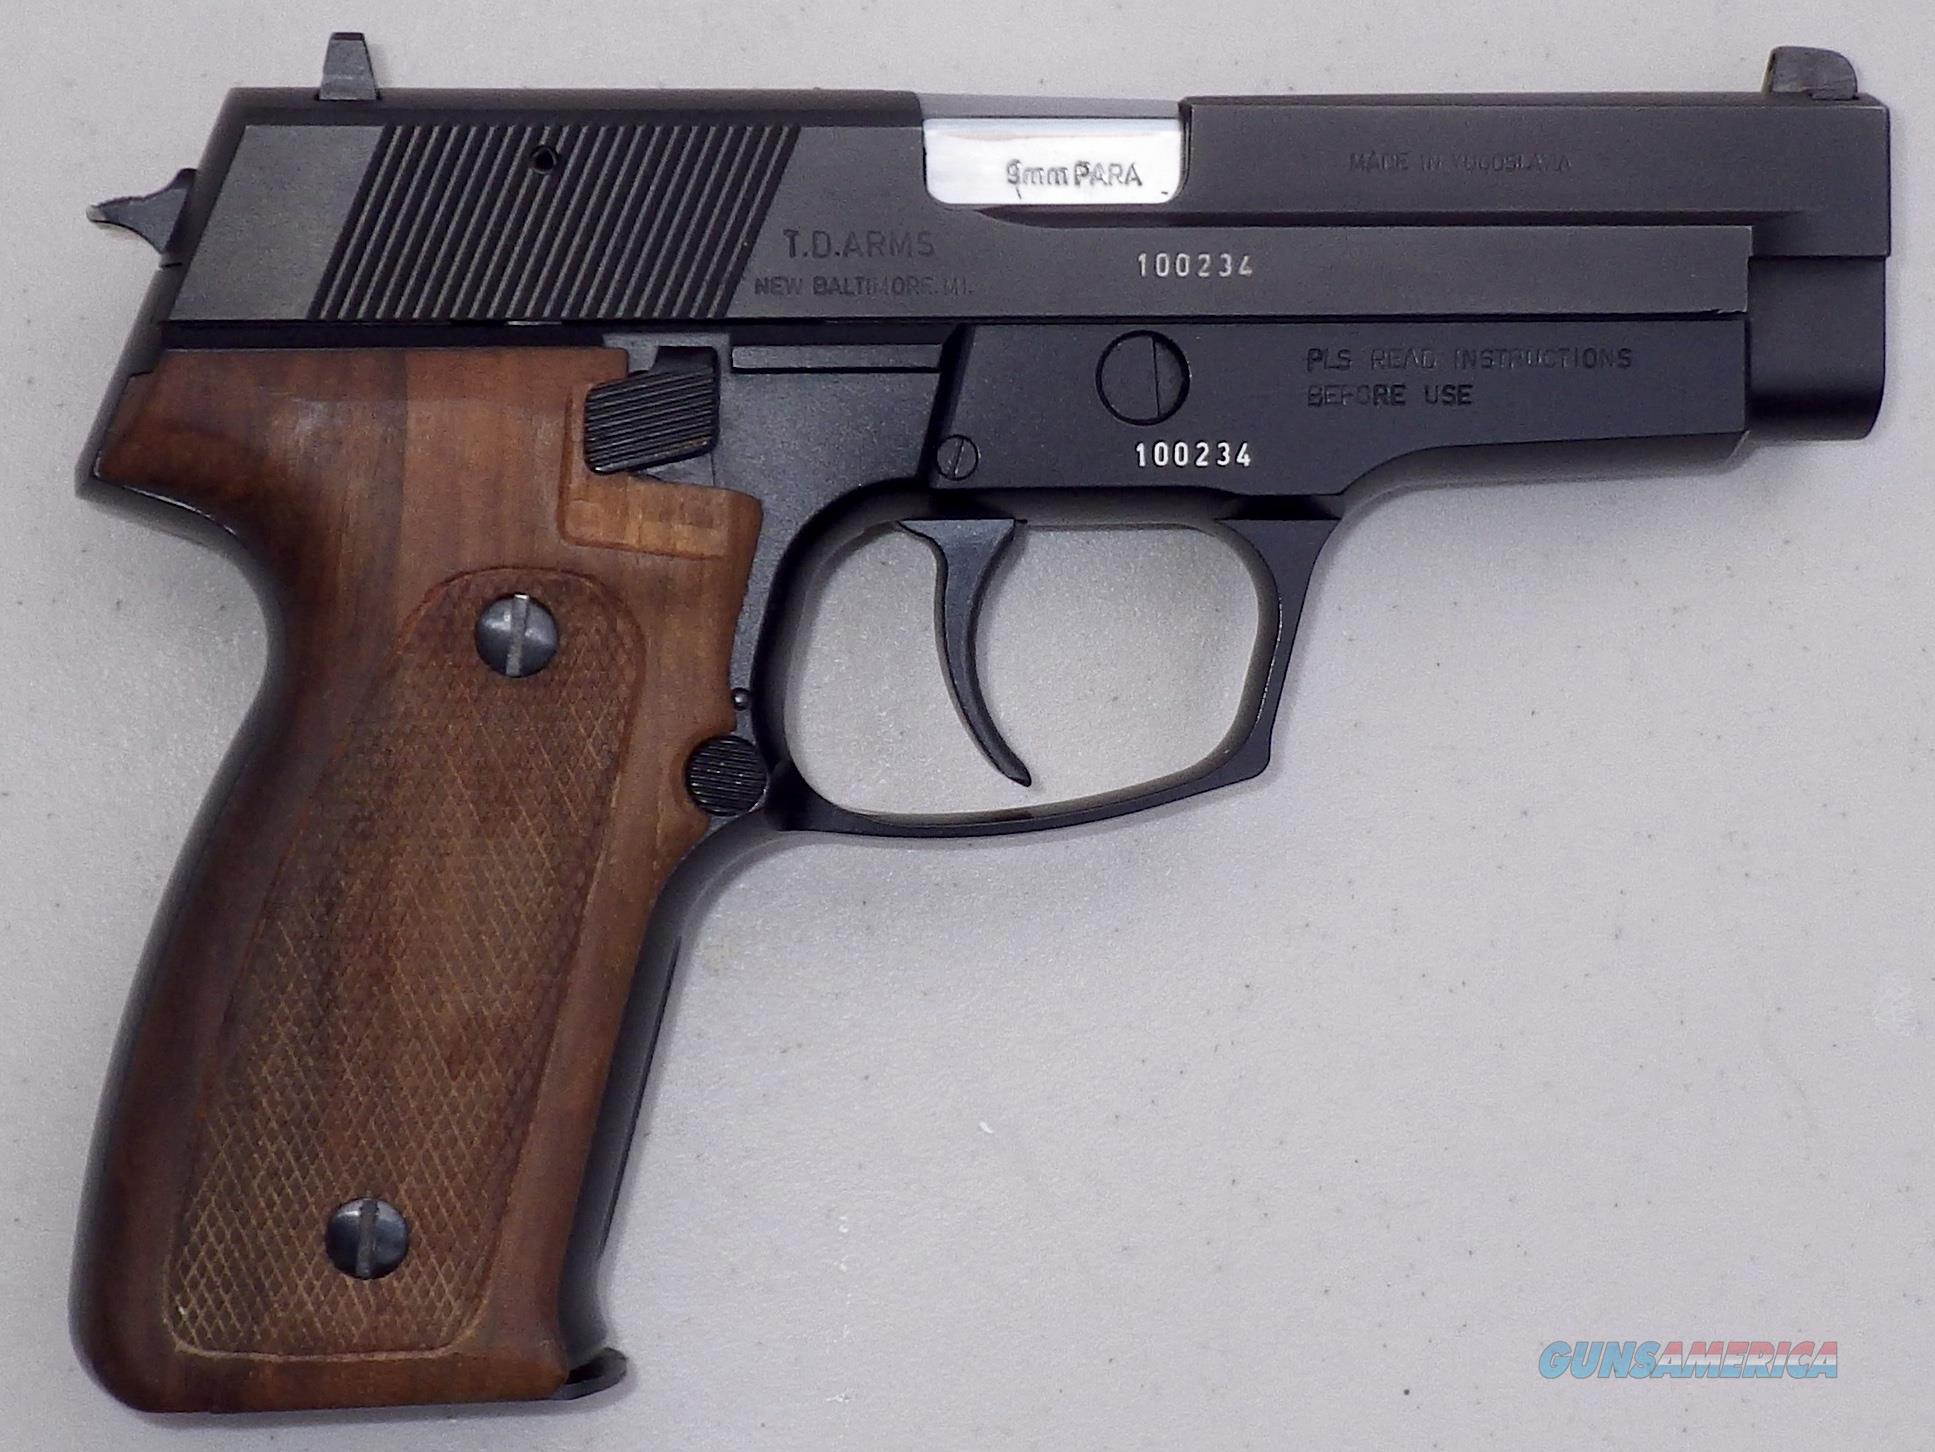 Zastava (CZ) 99 9mm circa 1991, new in box, 2 15-round mags, papers, wood grips, matte slide  Guns > Pistols > Zastava Arms